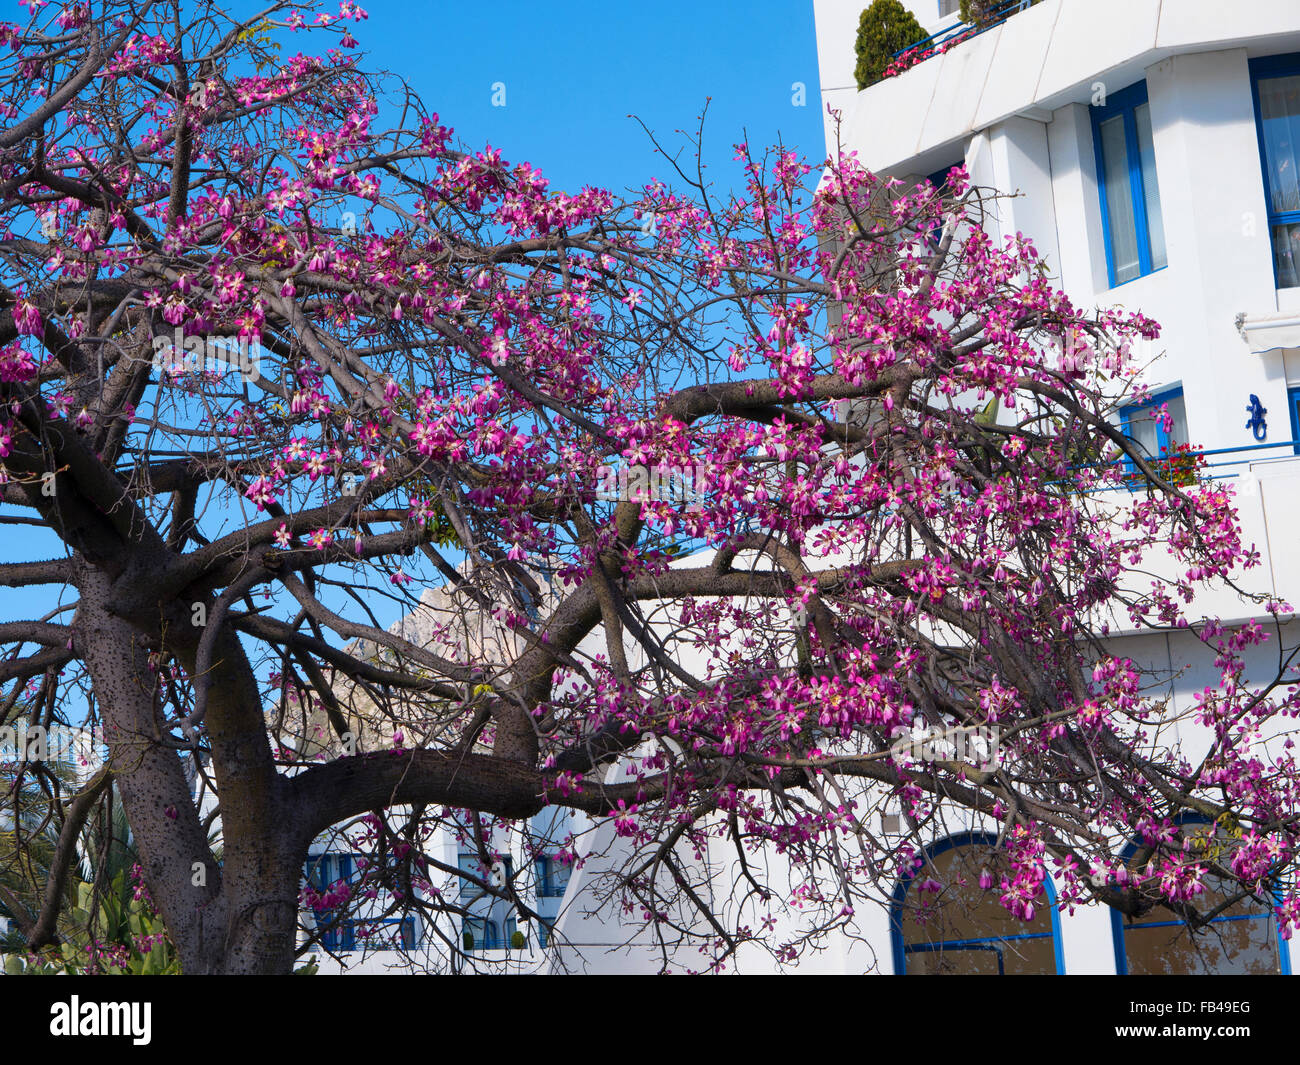 Avocado Tree With Its Pink Flowers In Marbella On The Costa Del Sol